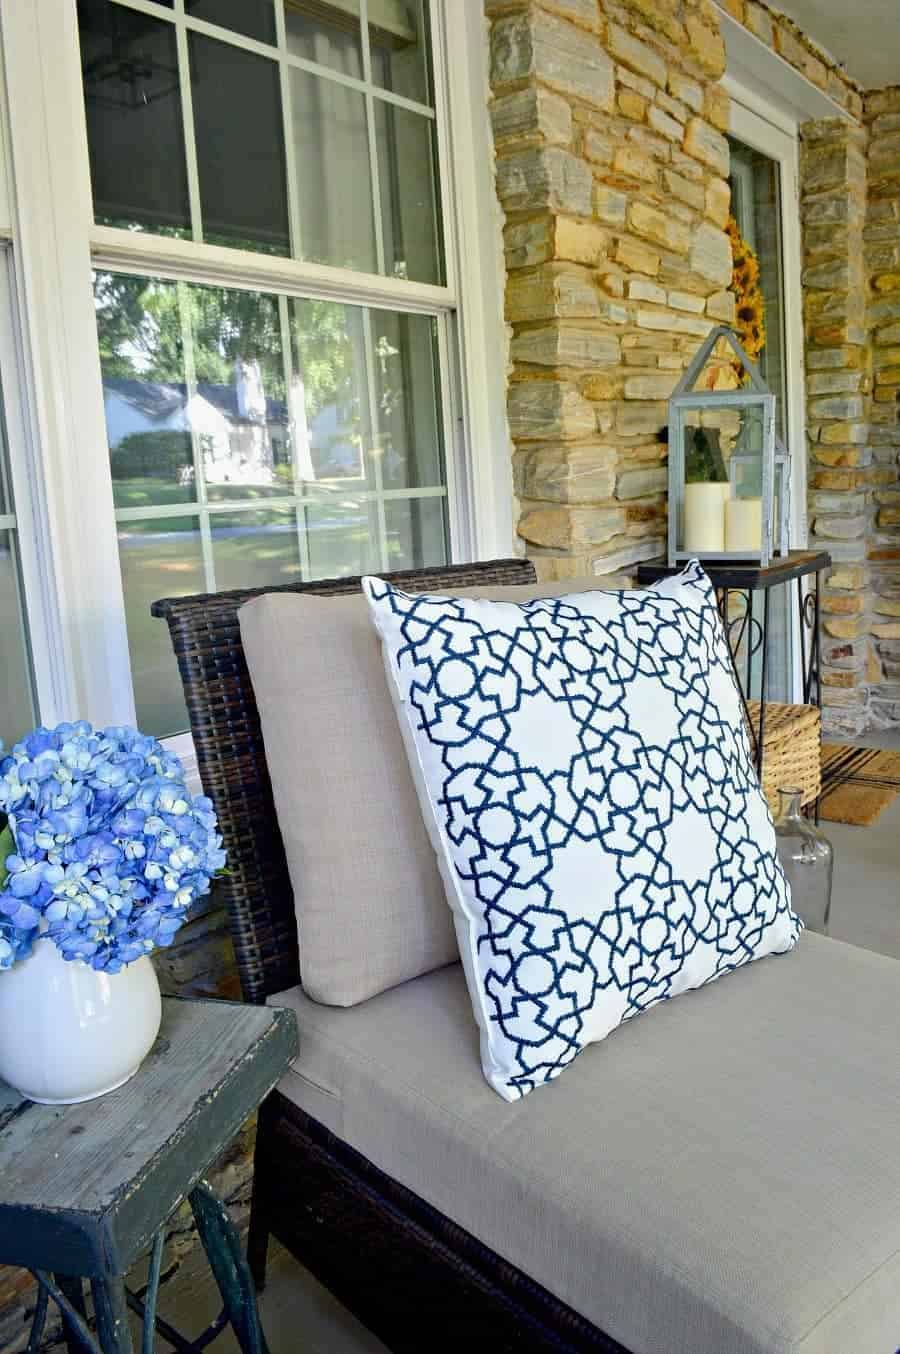 wicker chair on porch with blue and white pillows and blue hydrangeas in a white pitcher